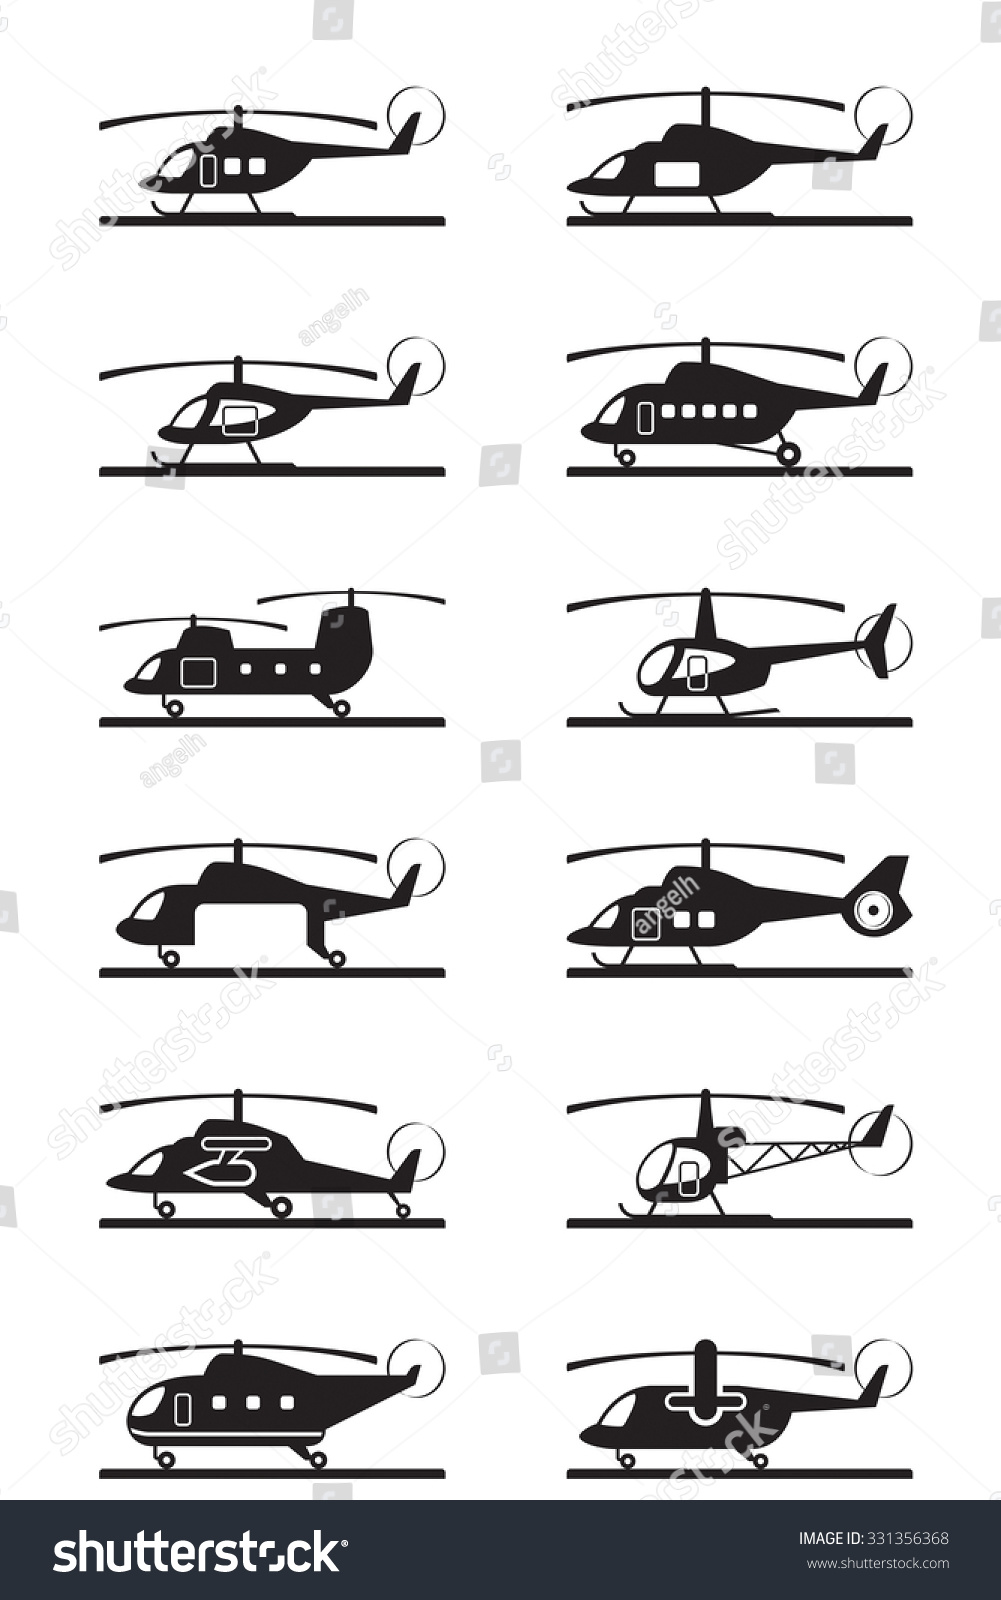 different types of military helicopters with Stock Vector Different Types Of Helicopters Vector Illustration on Feijidetupian moreover 741567641391878144 furthermore Stock Vector Different Types Of Helicopters Vector Illustration as well China Liaoning Aircraft Carrier Vs Nimitz Kuz sov 2016 11 together with Windows 10 Tank Games.